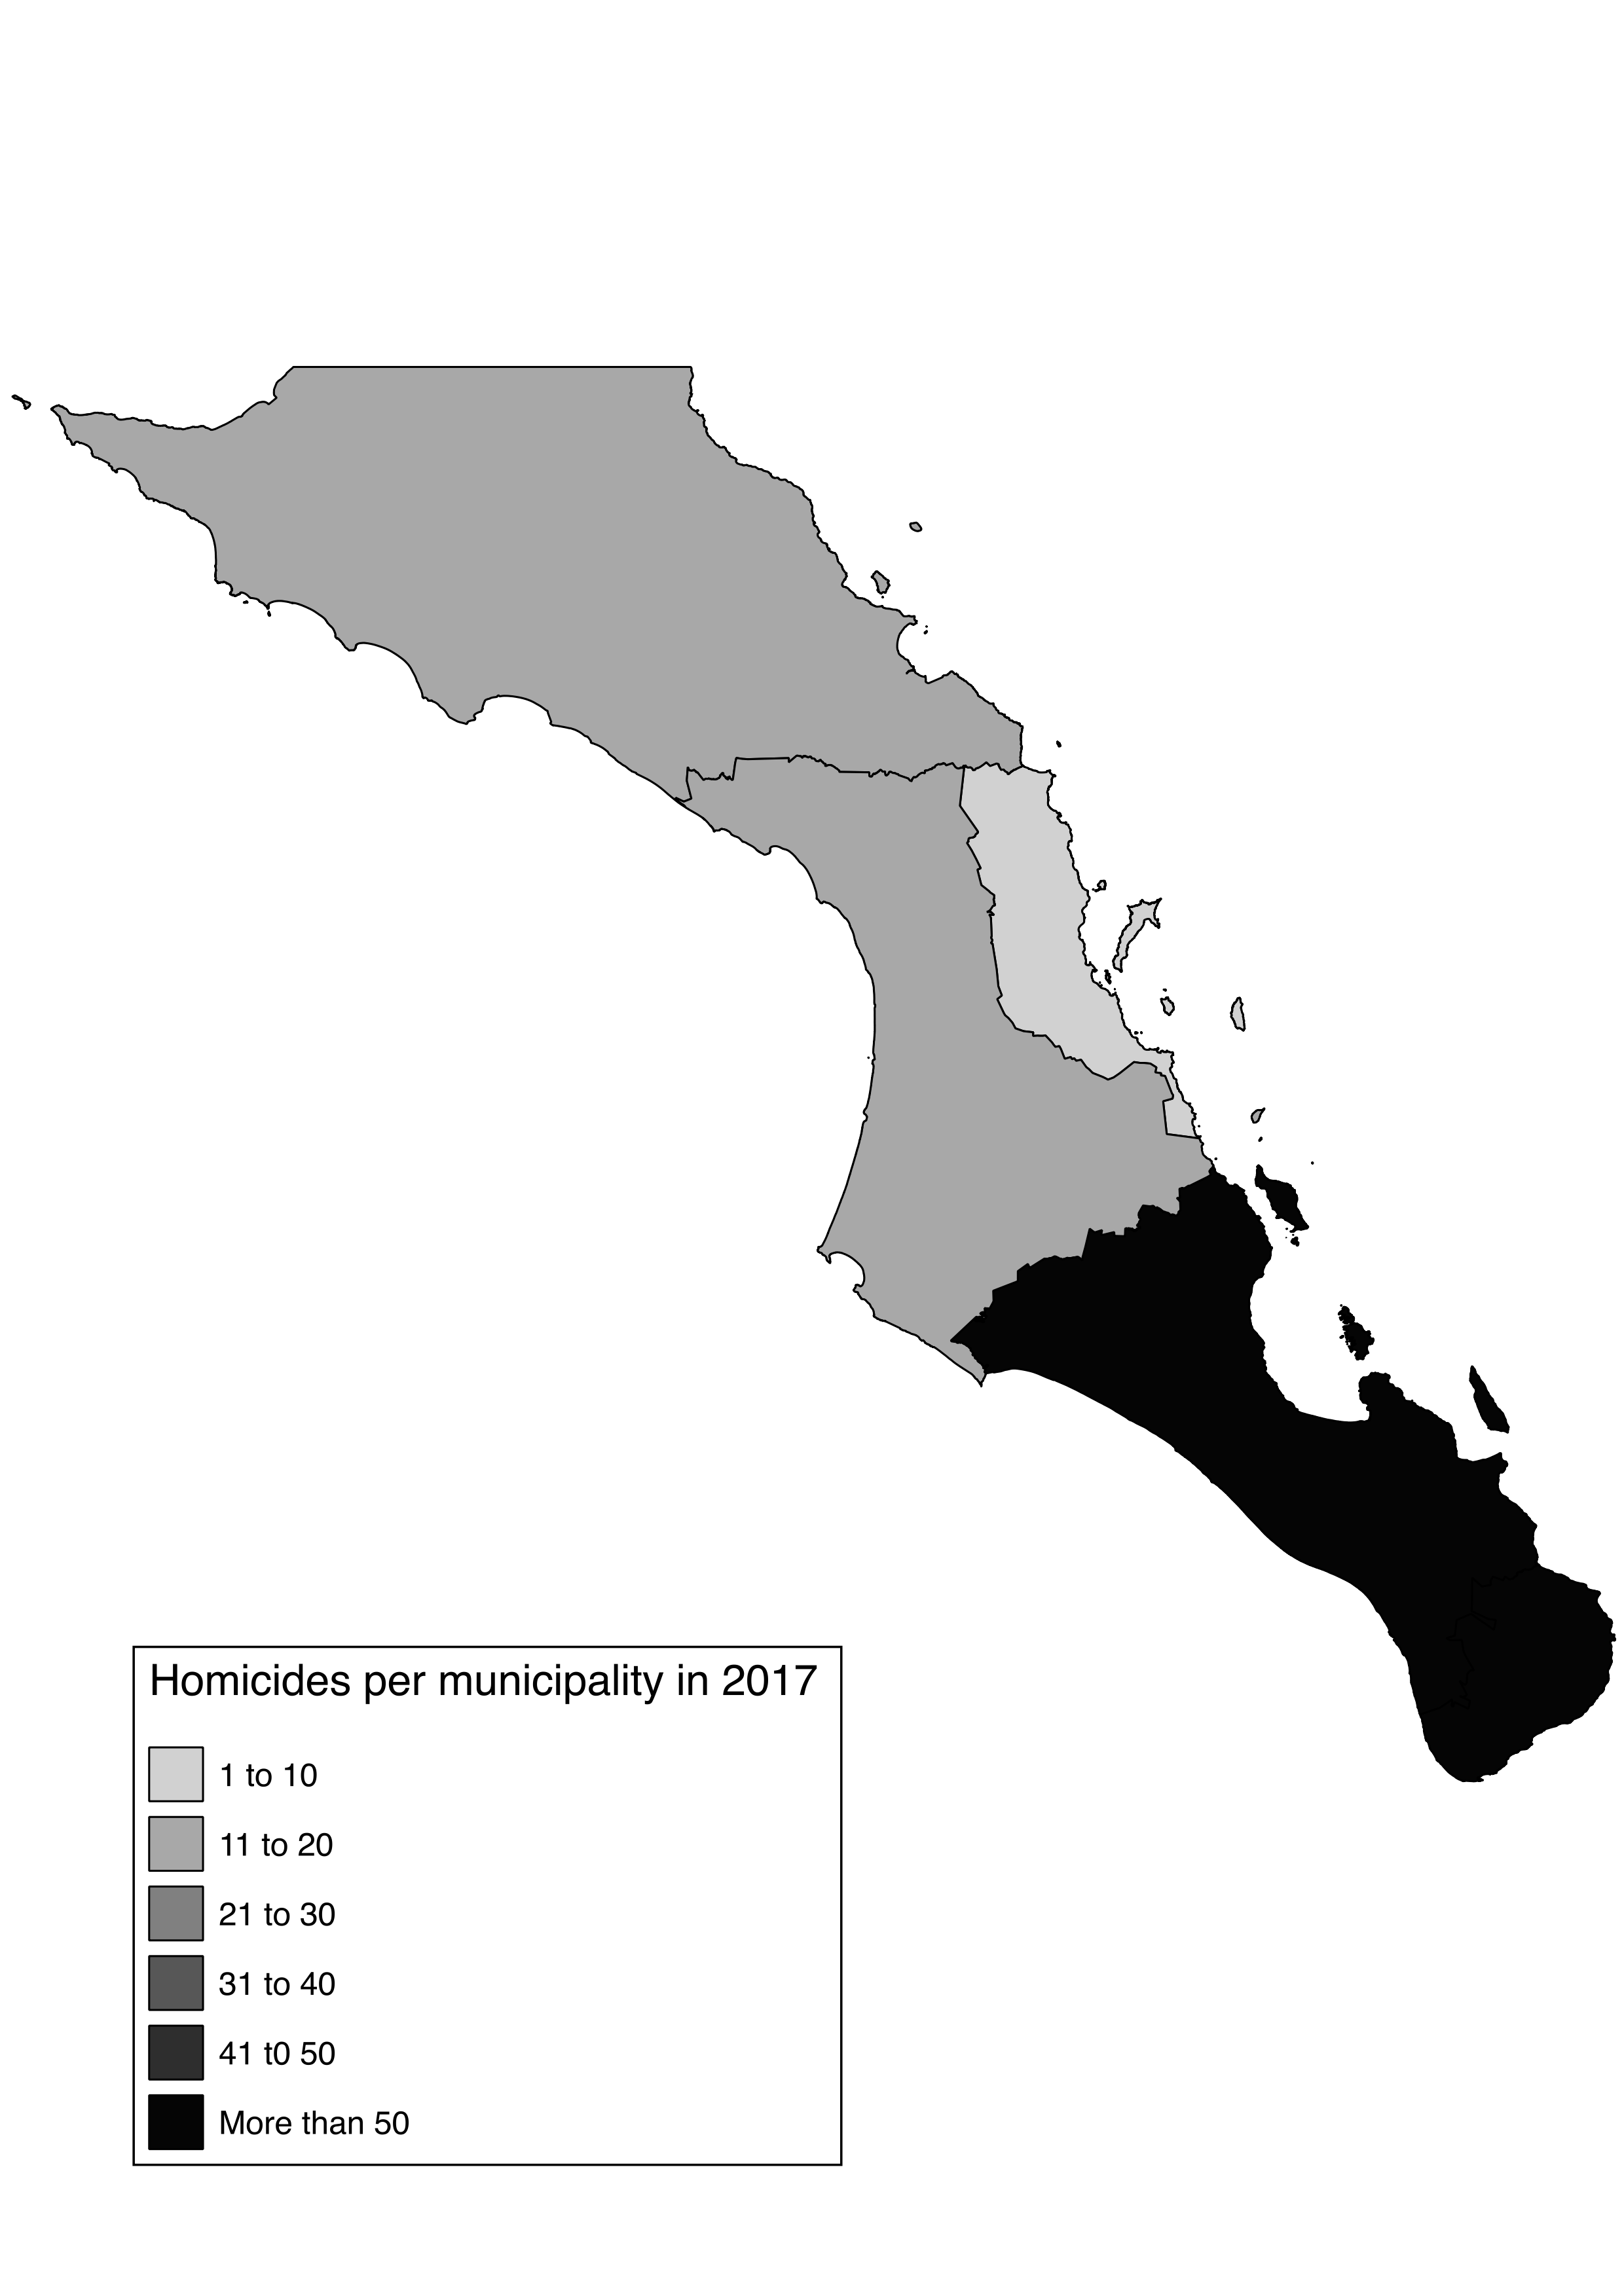 Spatial distribution of homicides in BCS in 2017